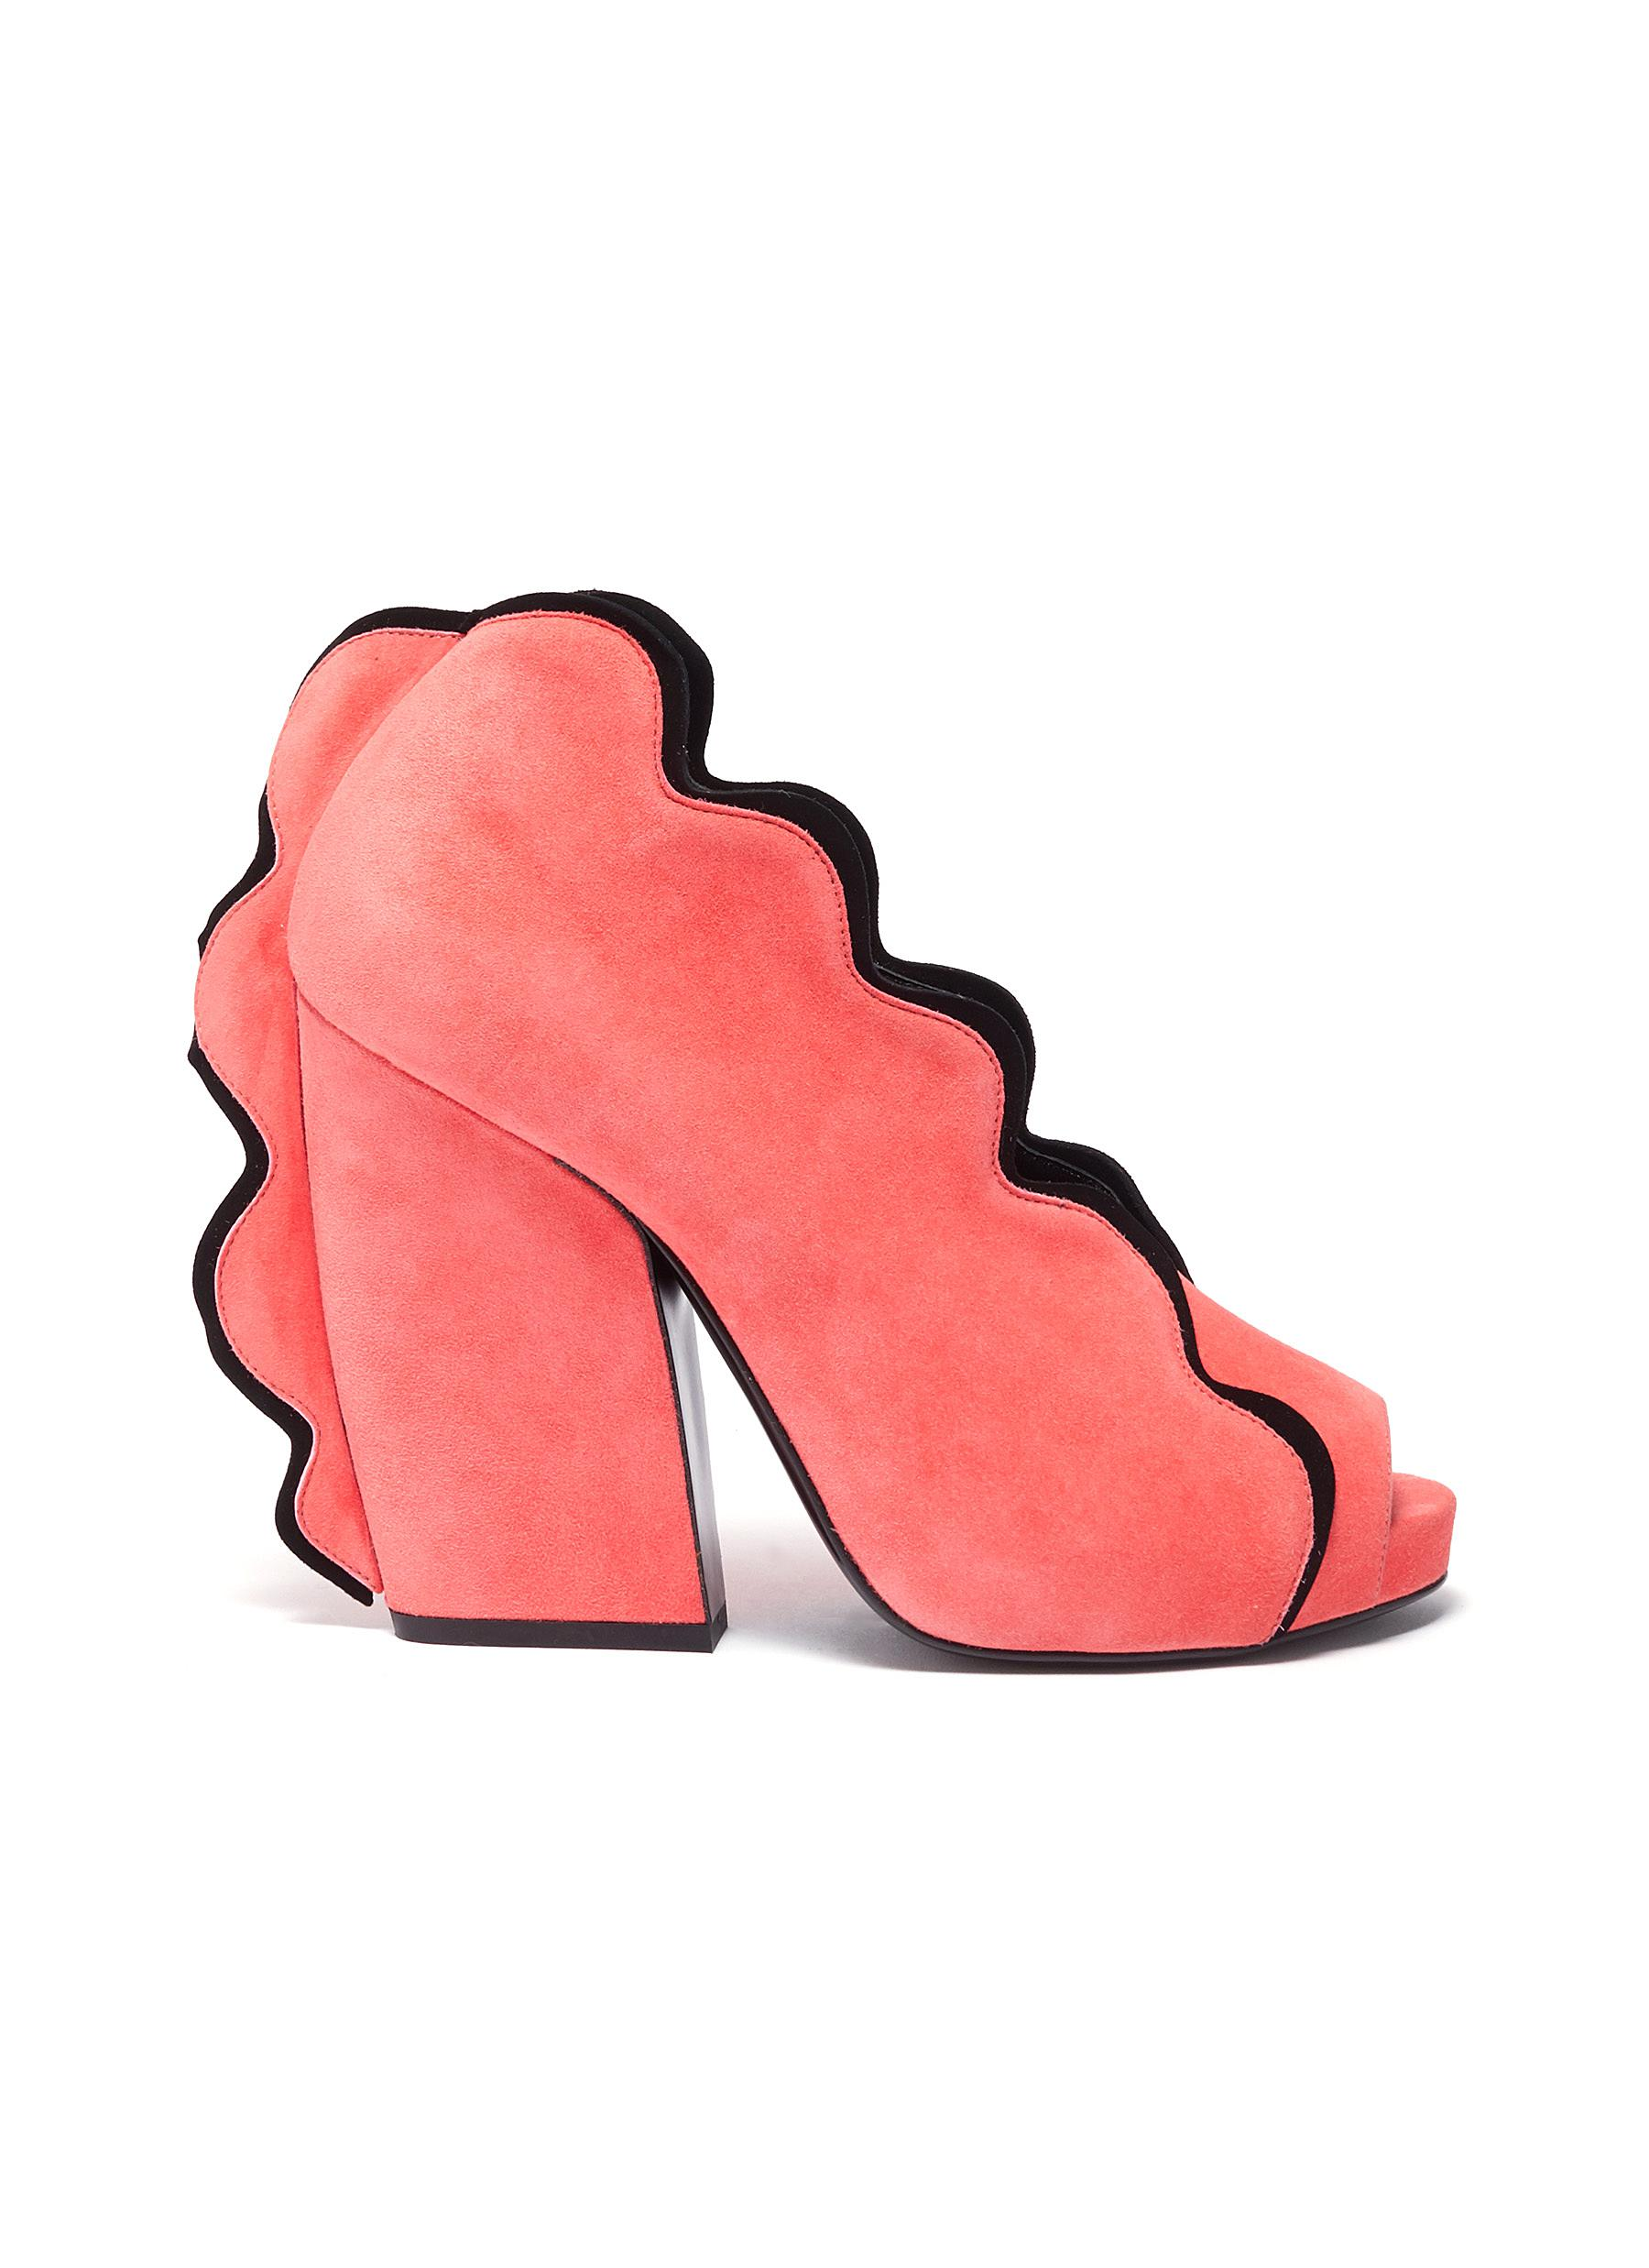 Pierre Hardy High Heels Sottsass scallop-trimmed suede sandals